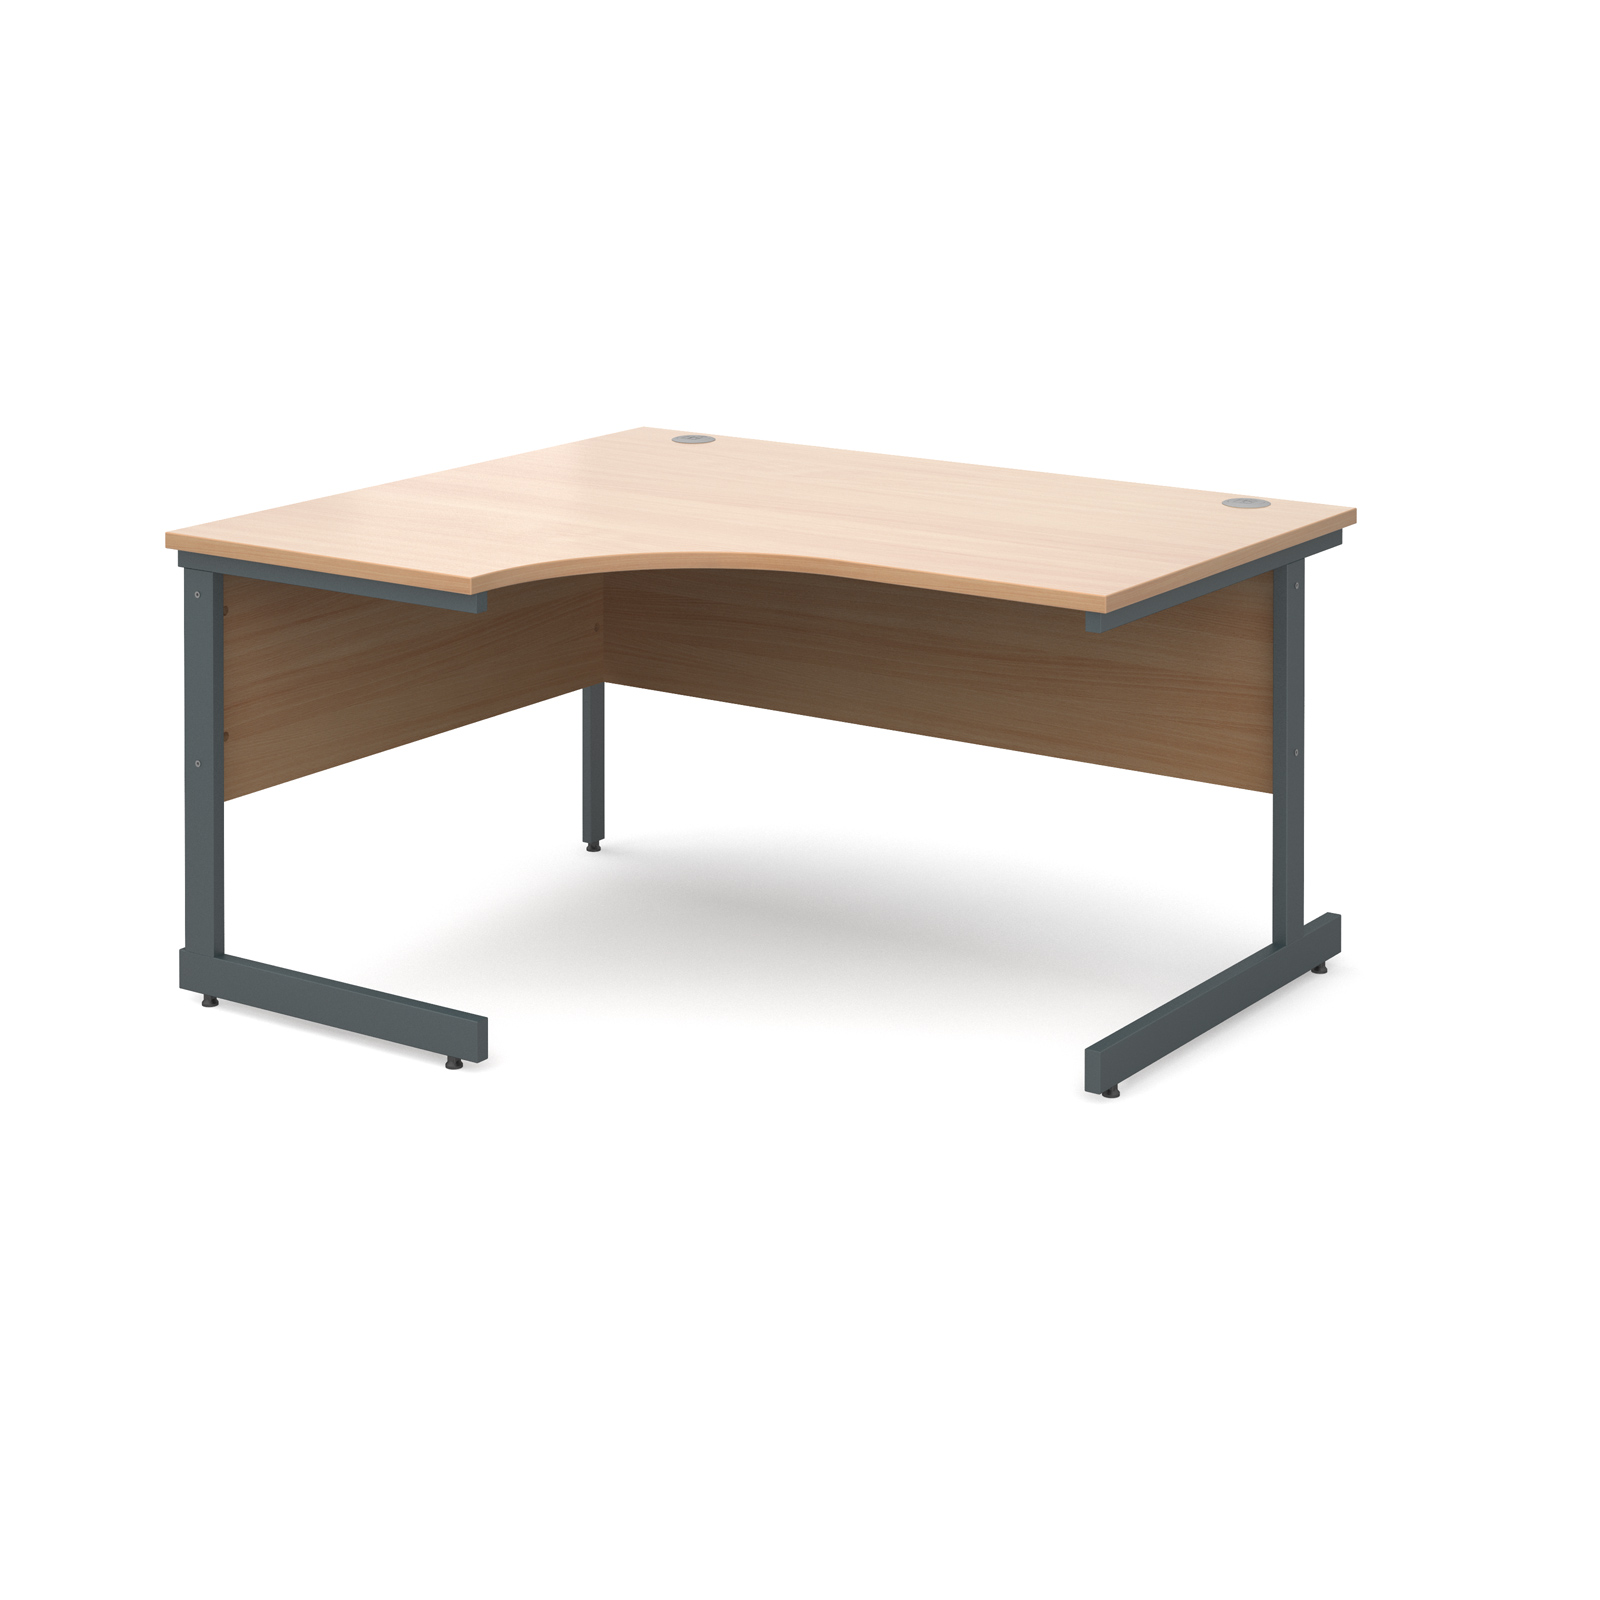 Contract 25 left hand ergonomic desk 1400mm - graphite cantilever frame, beech top